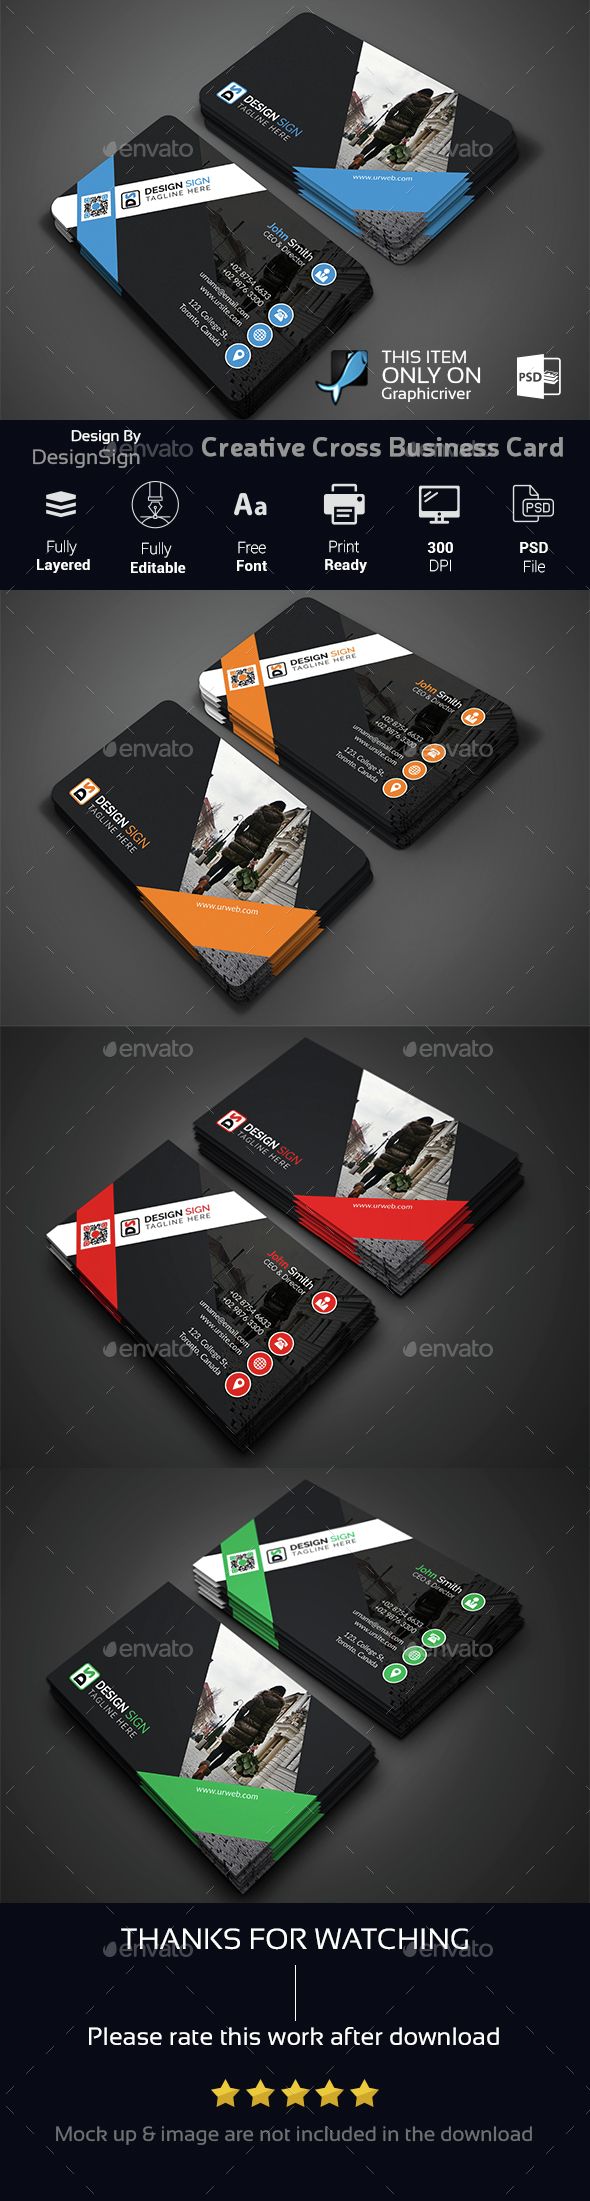 Creative Cross Business Card - Creative Business Cards